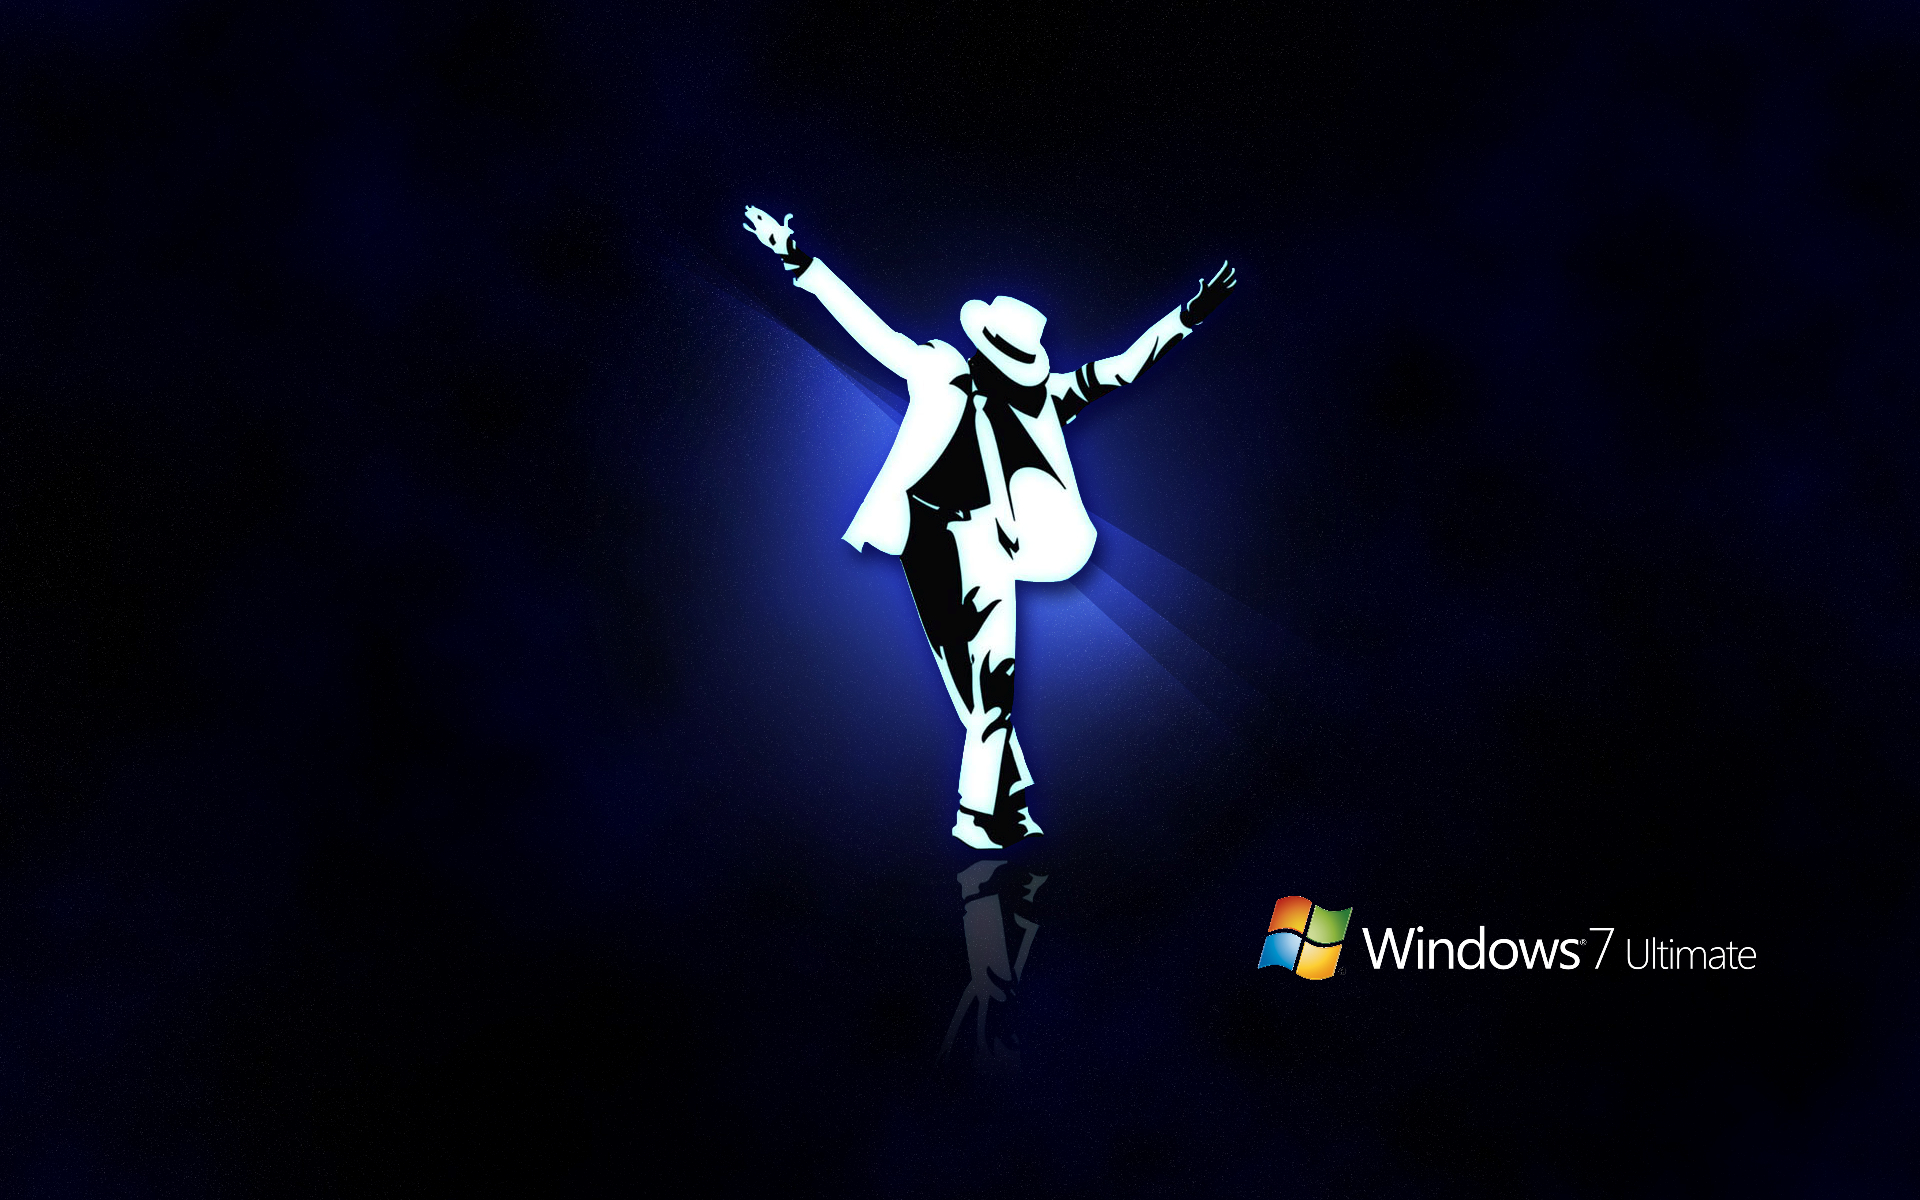 1920x1200px Windows 7 Ultimate Logo Wallpapers Wallpapersafari